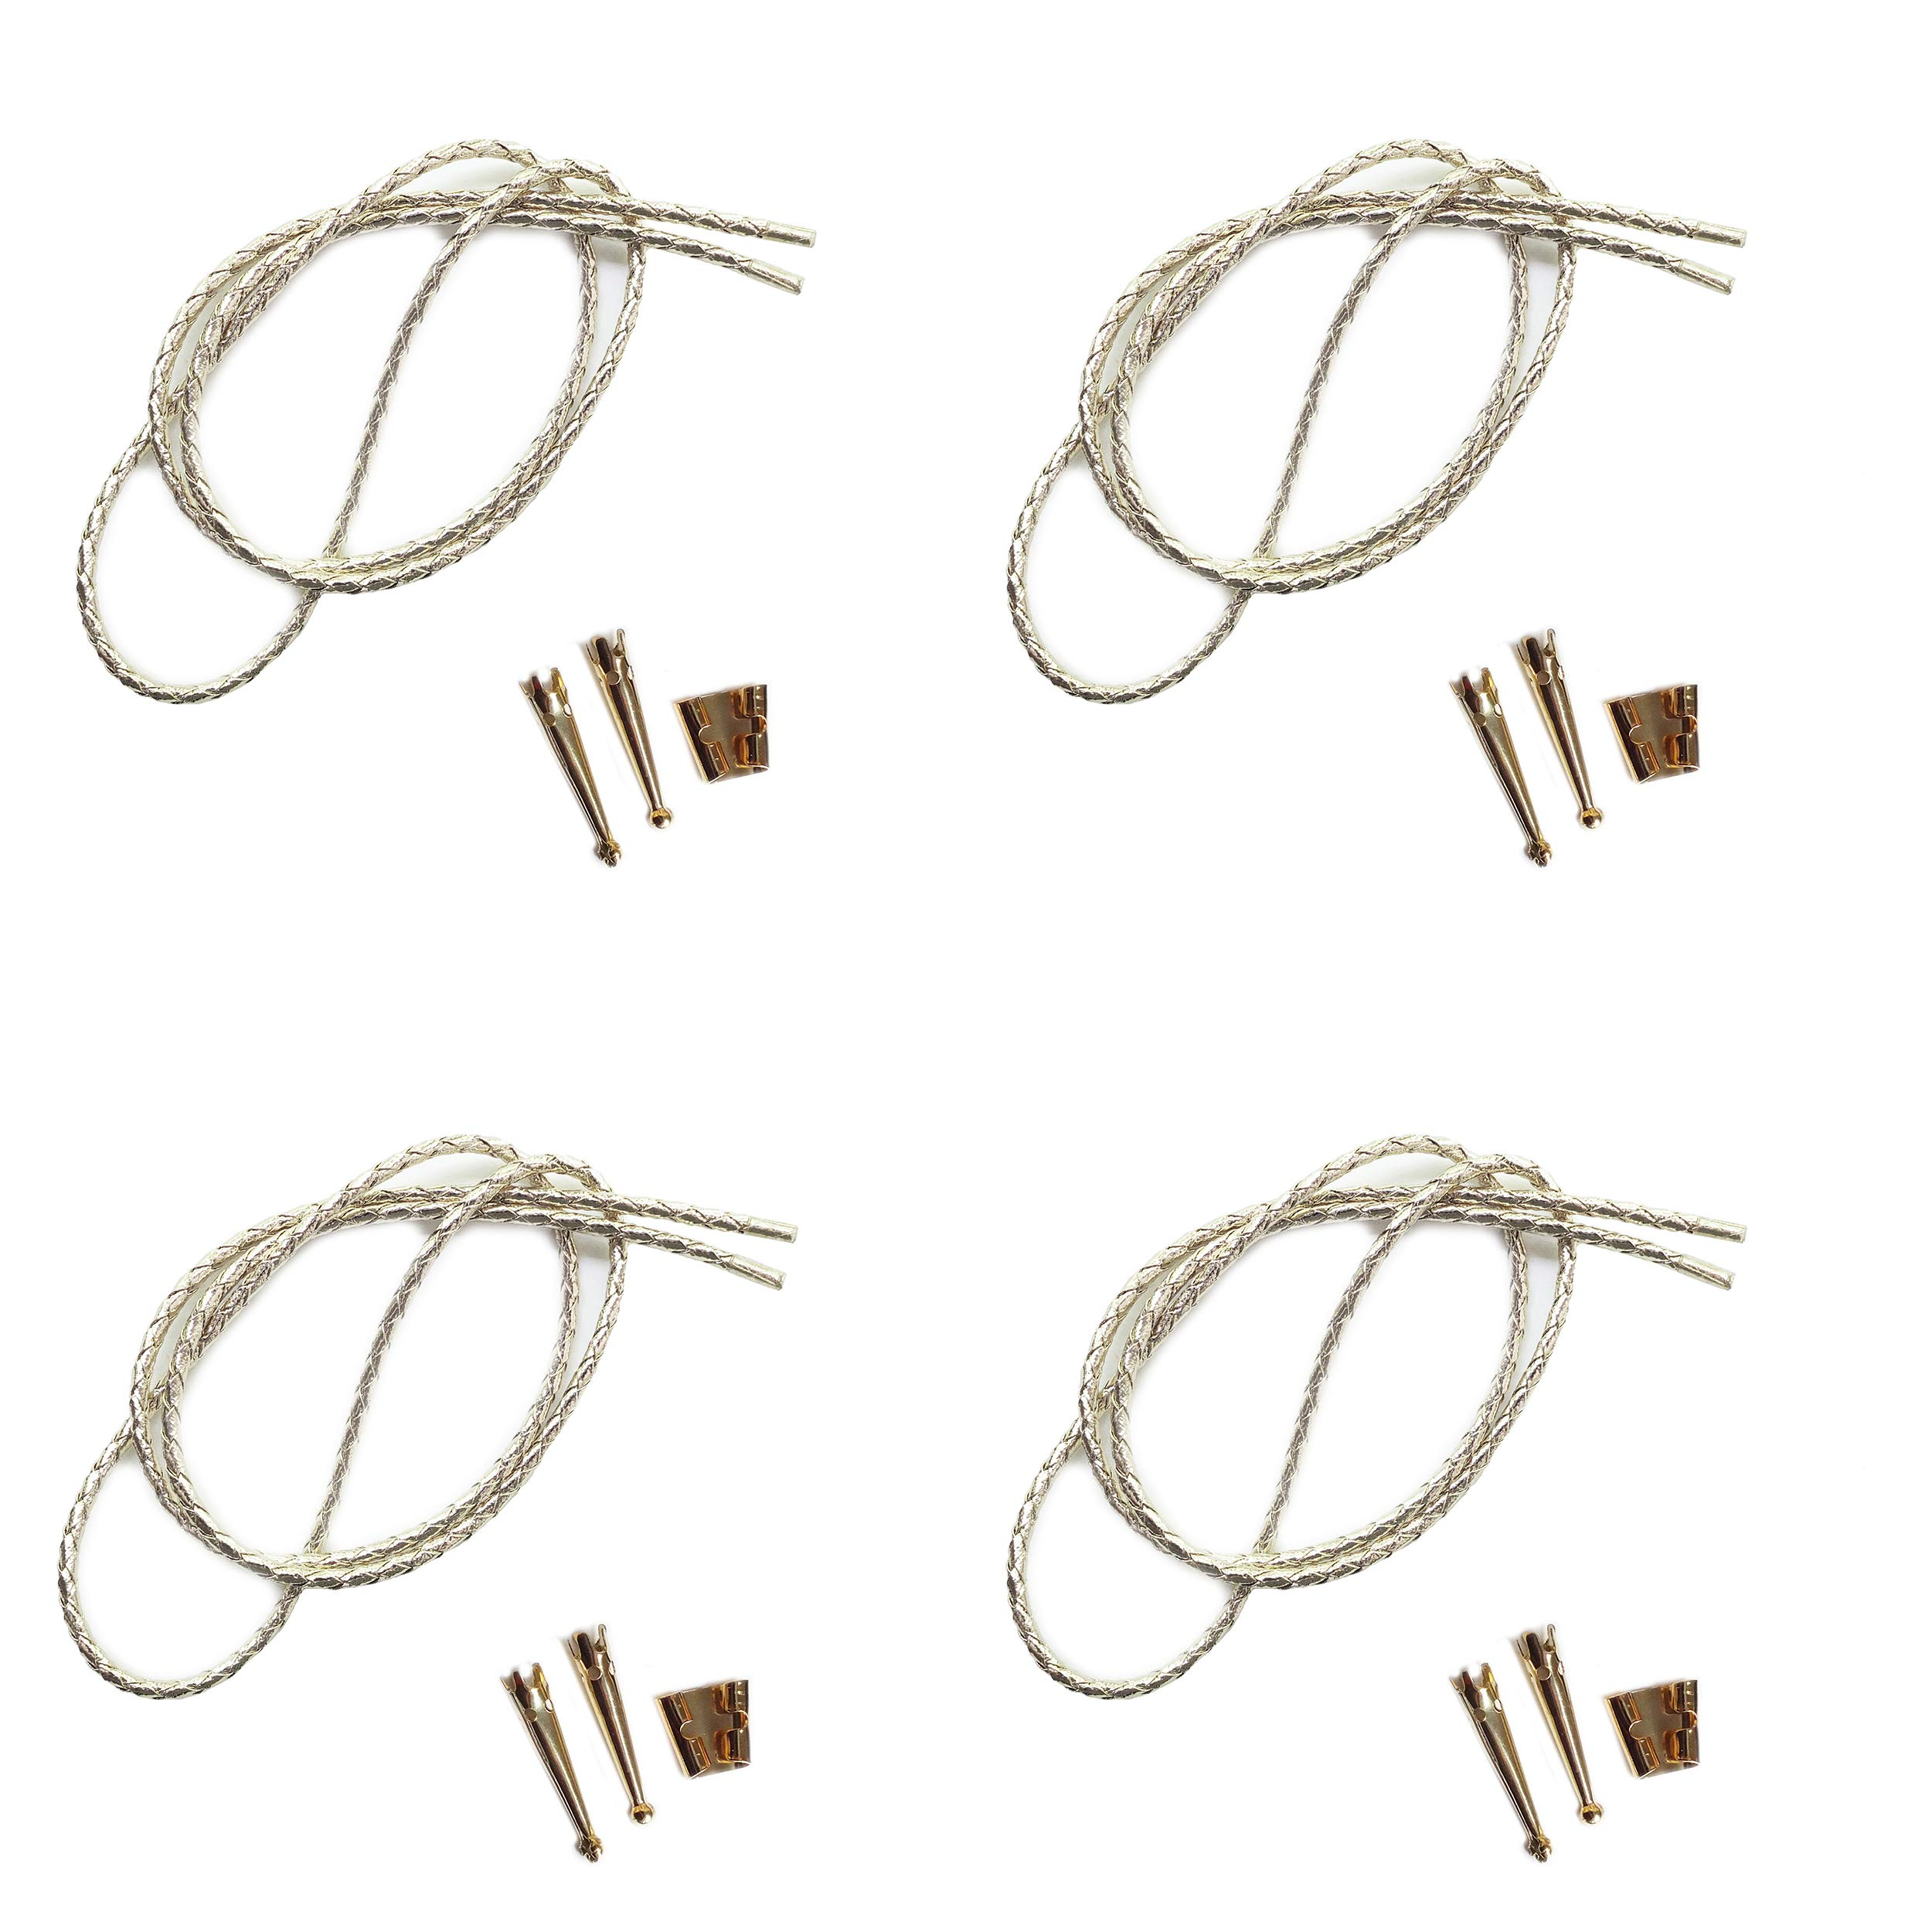 Blank Bolo String Tie Parts Kit Standard Slide Smooth Tips Silver Vinyl Braid DIY Gold Tone Supplies for 4 Ties